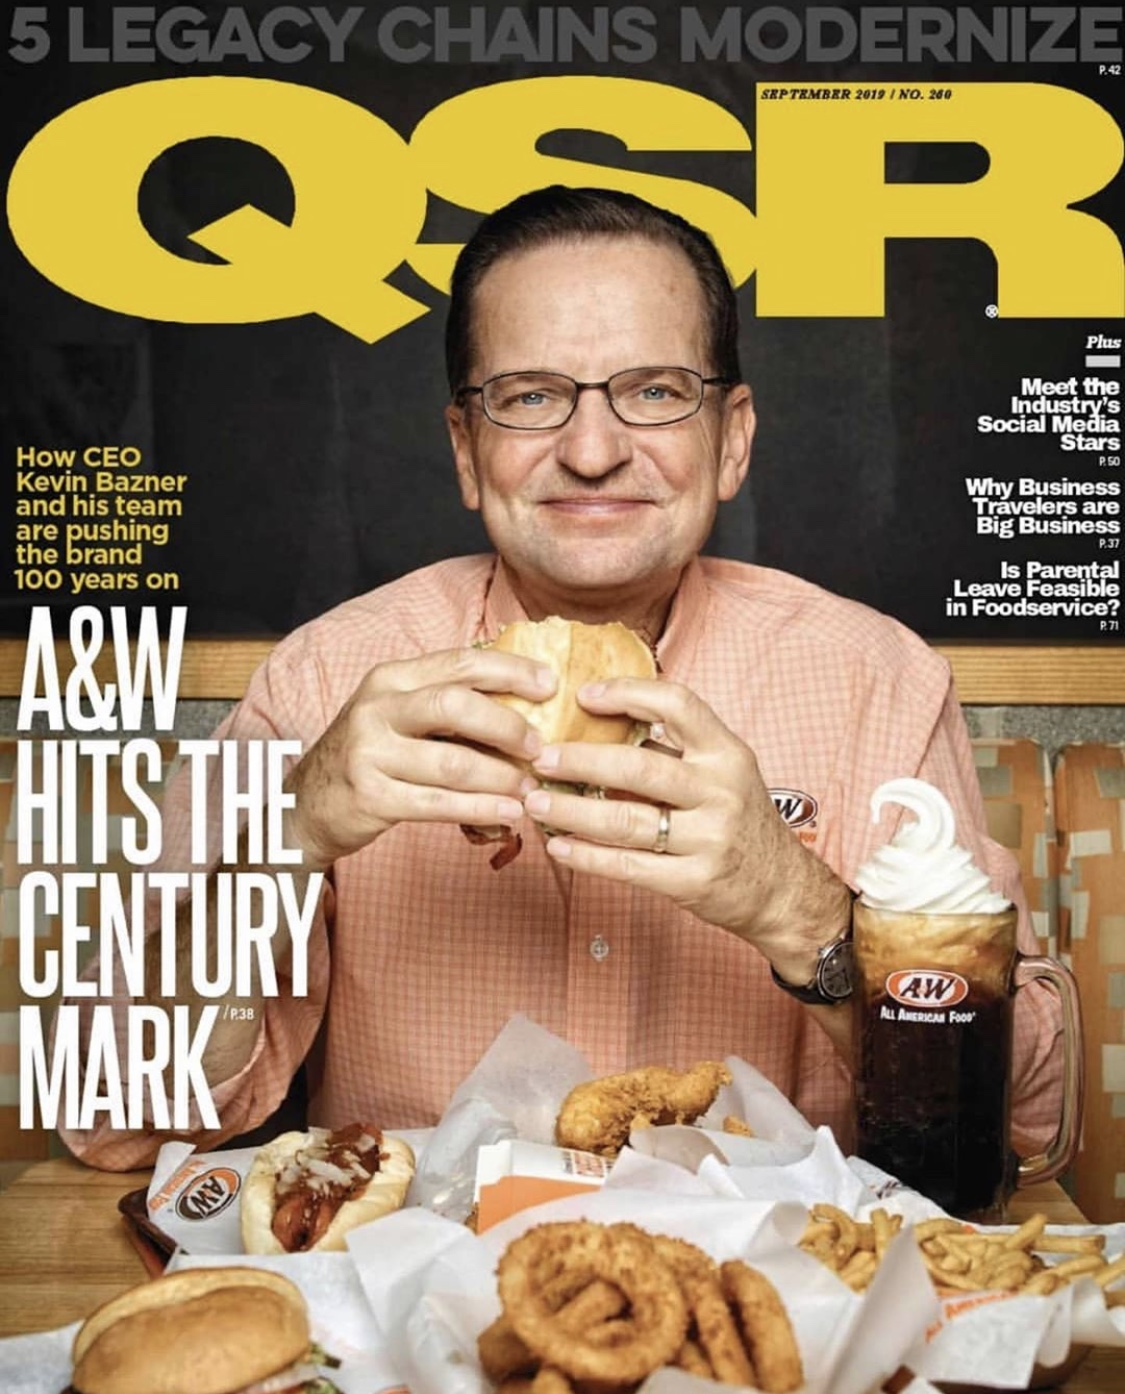 Kevin Bazner on the cover of QSR Magazine